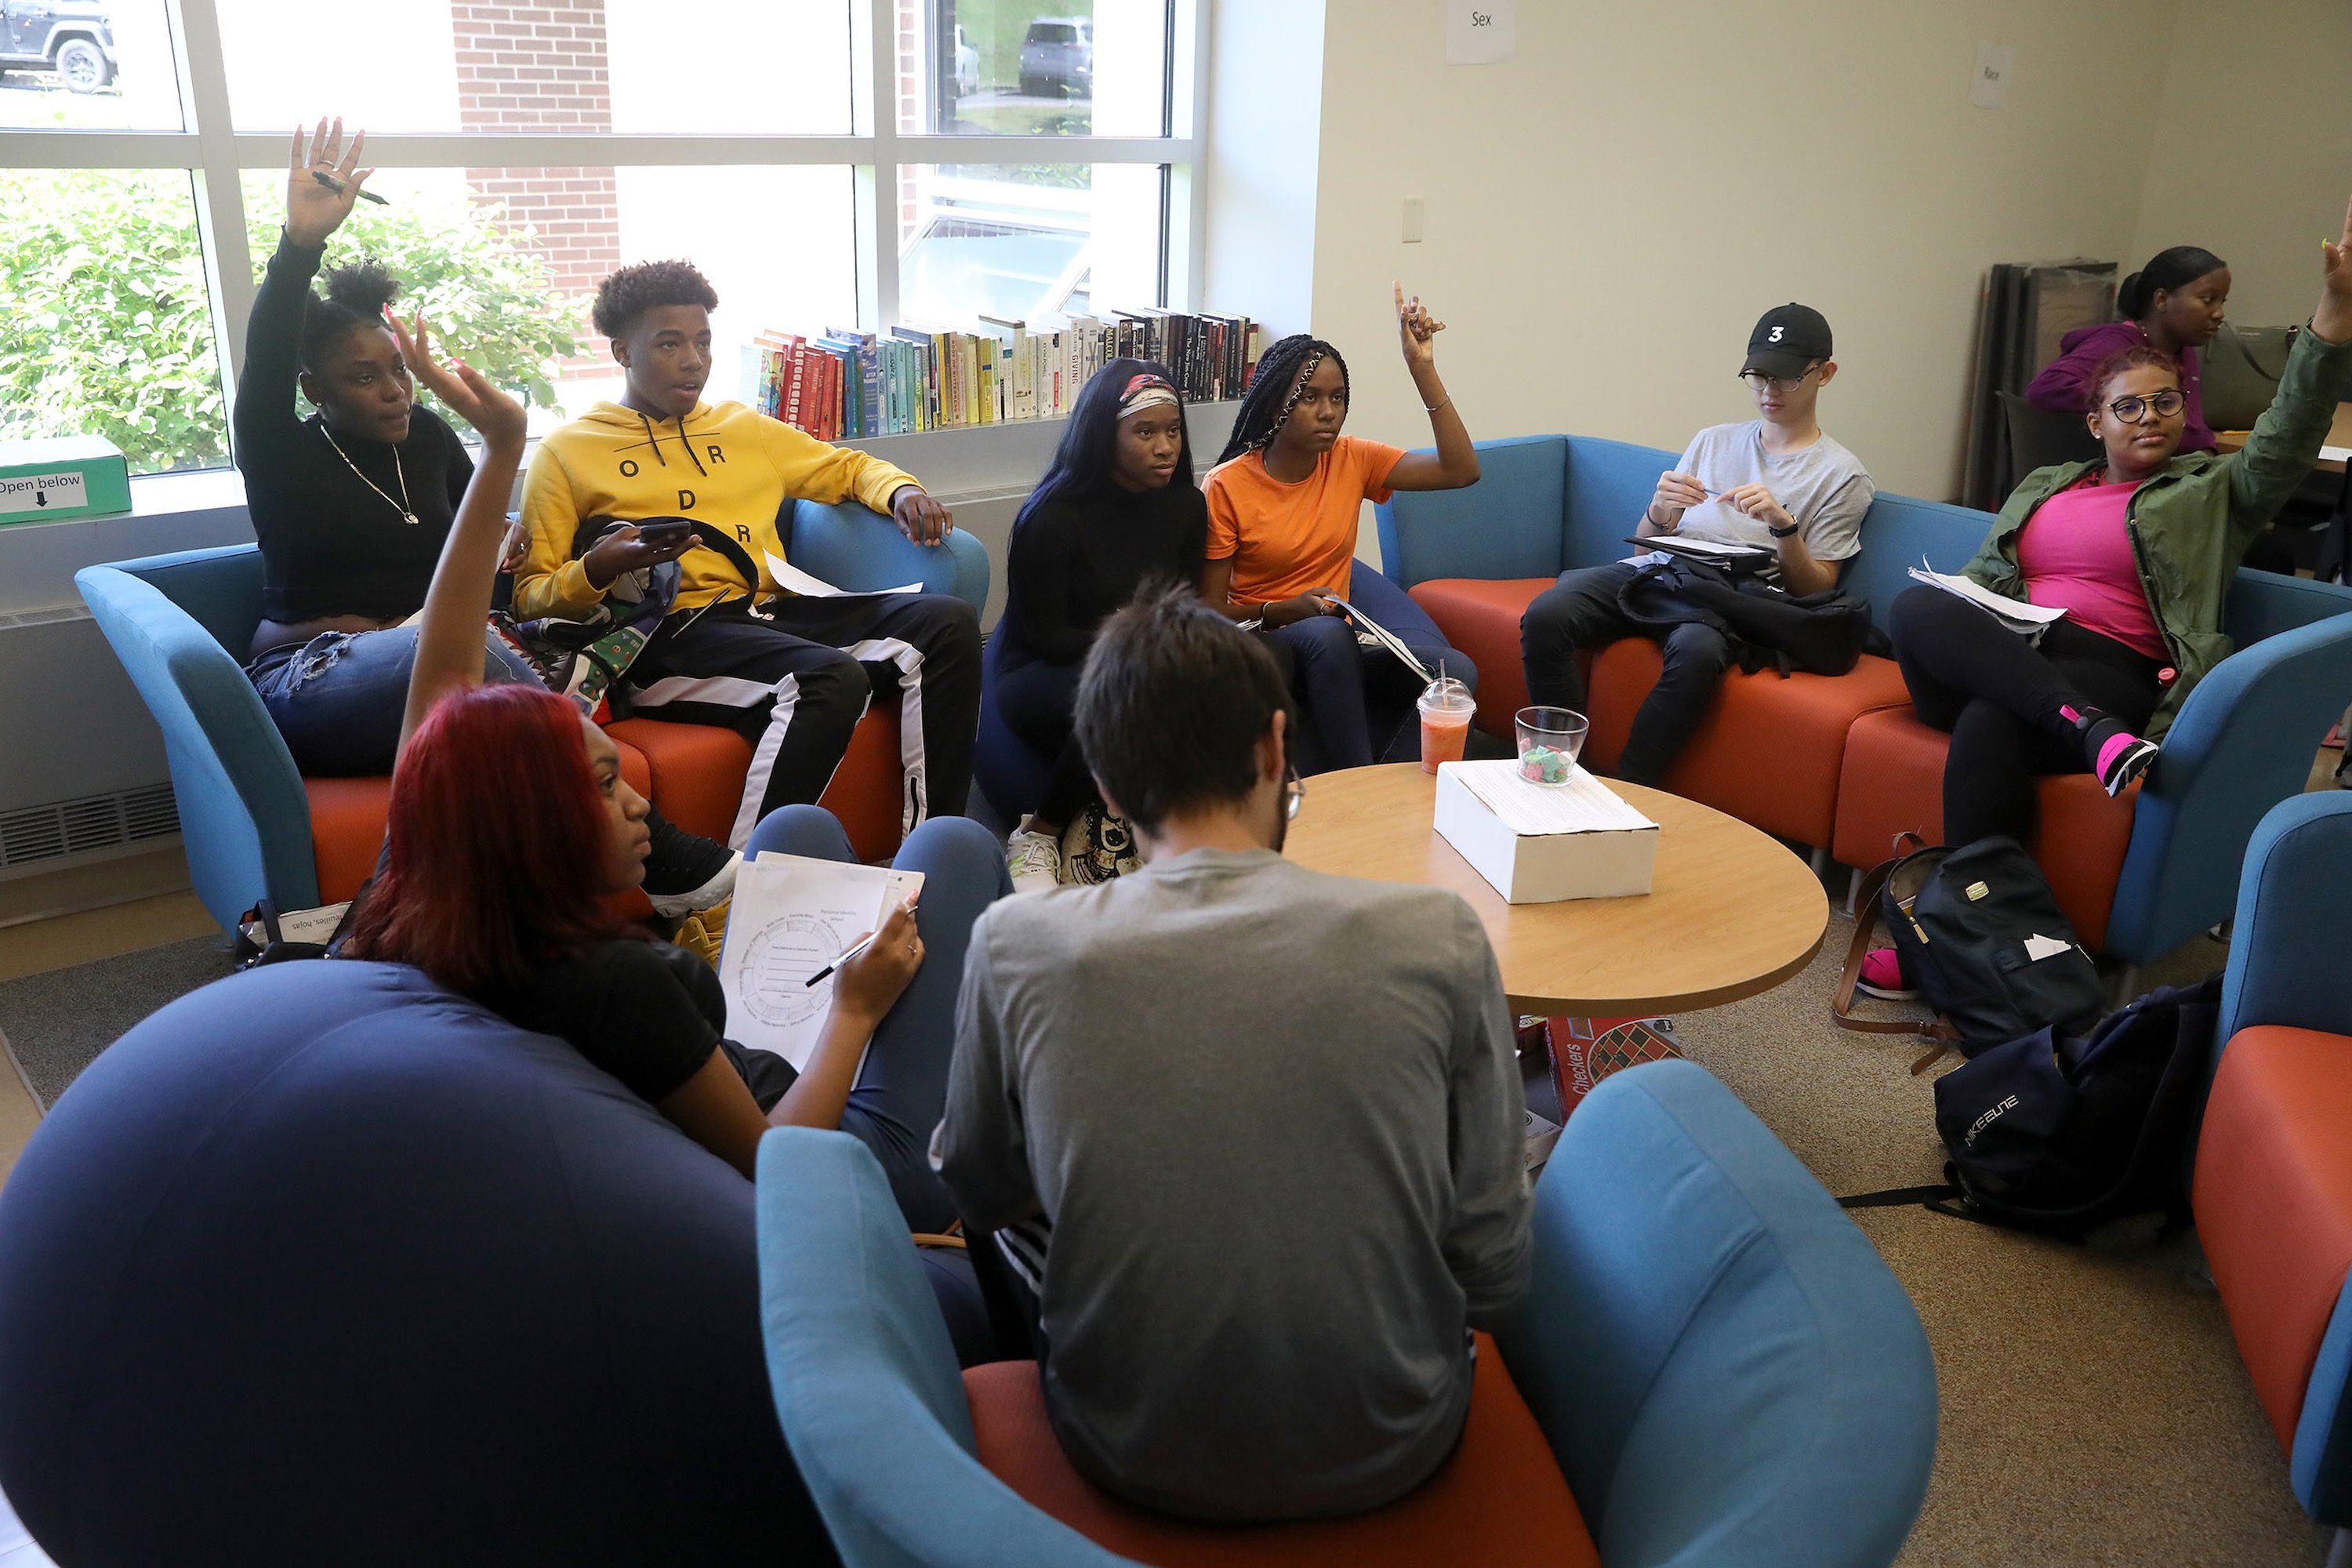 Students sitting in chairs around the room having a discussion